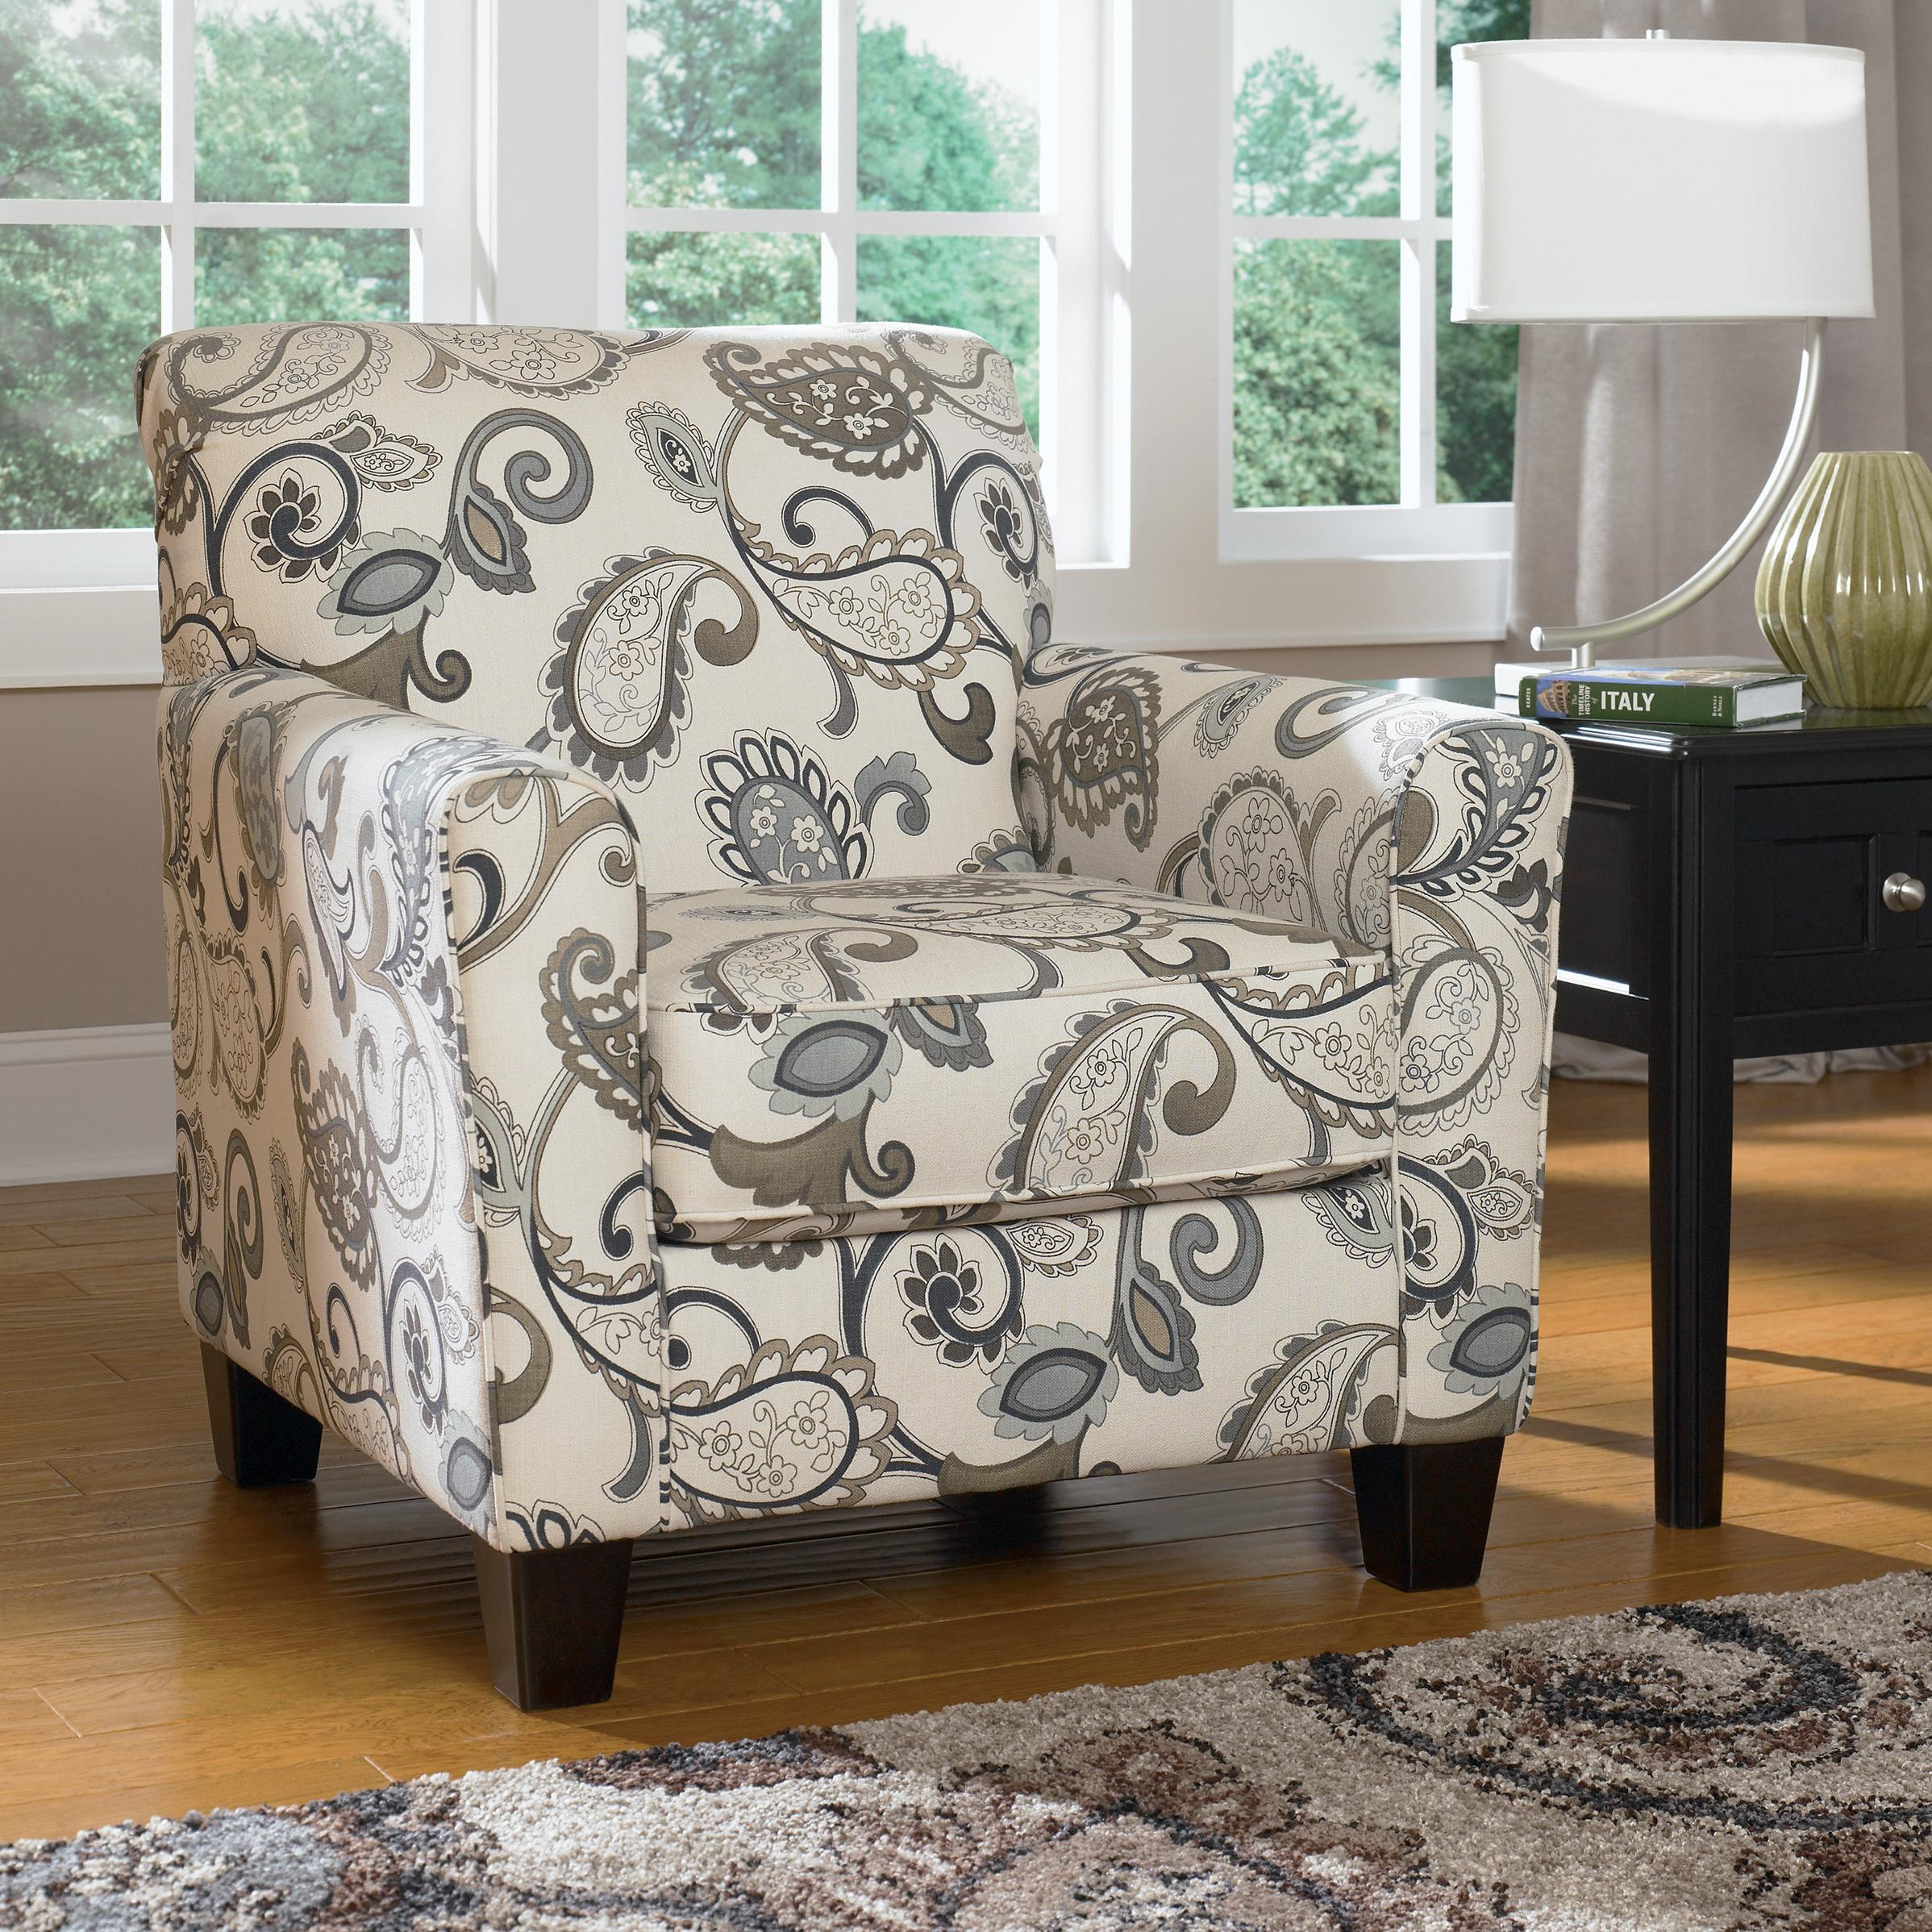 Accent Chairs Ashley Furniture Ashley Furniture Yvette Steel Accent Chair W Loose Seat Cushion